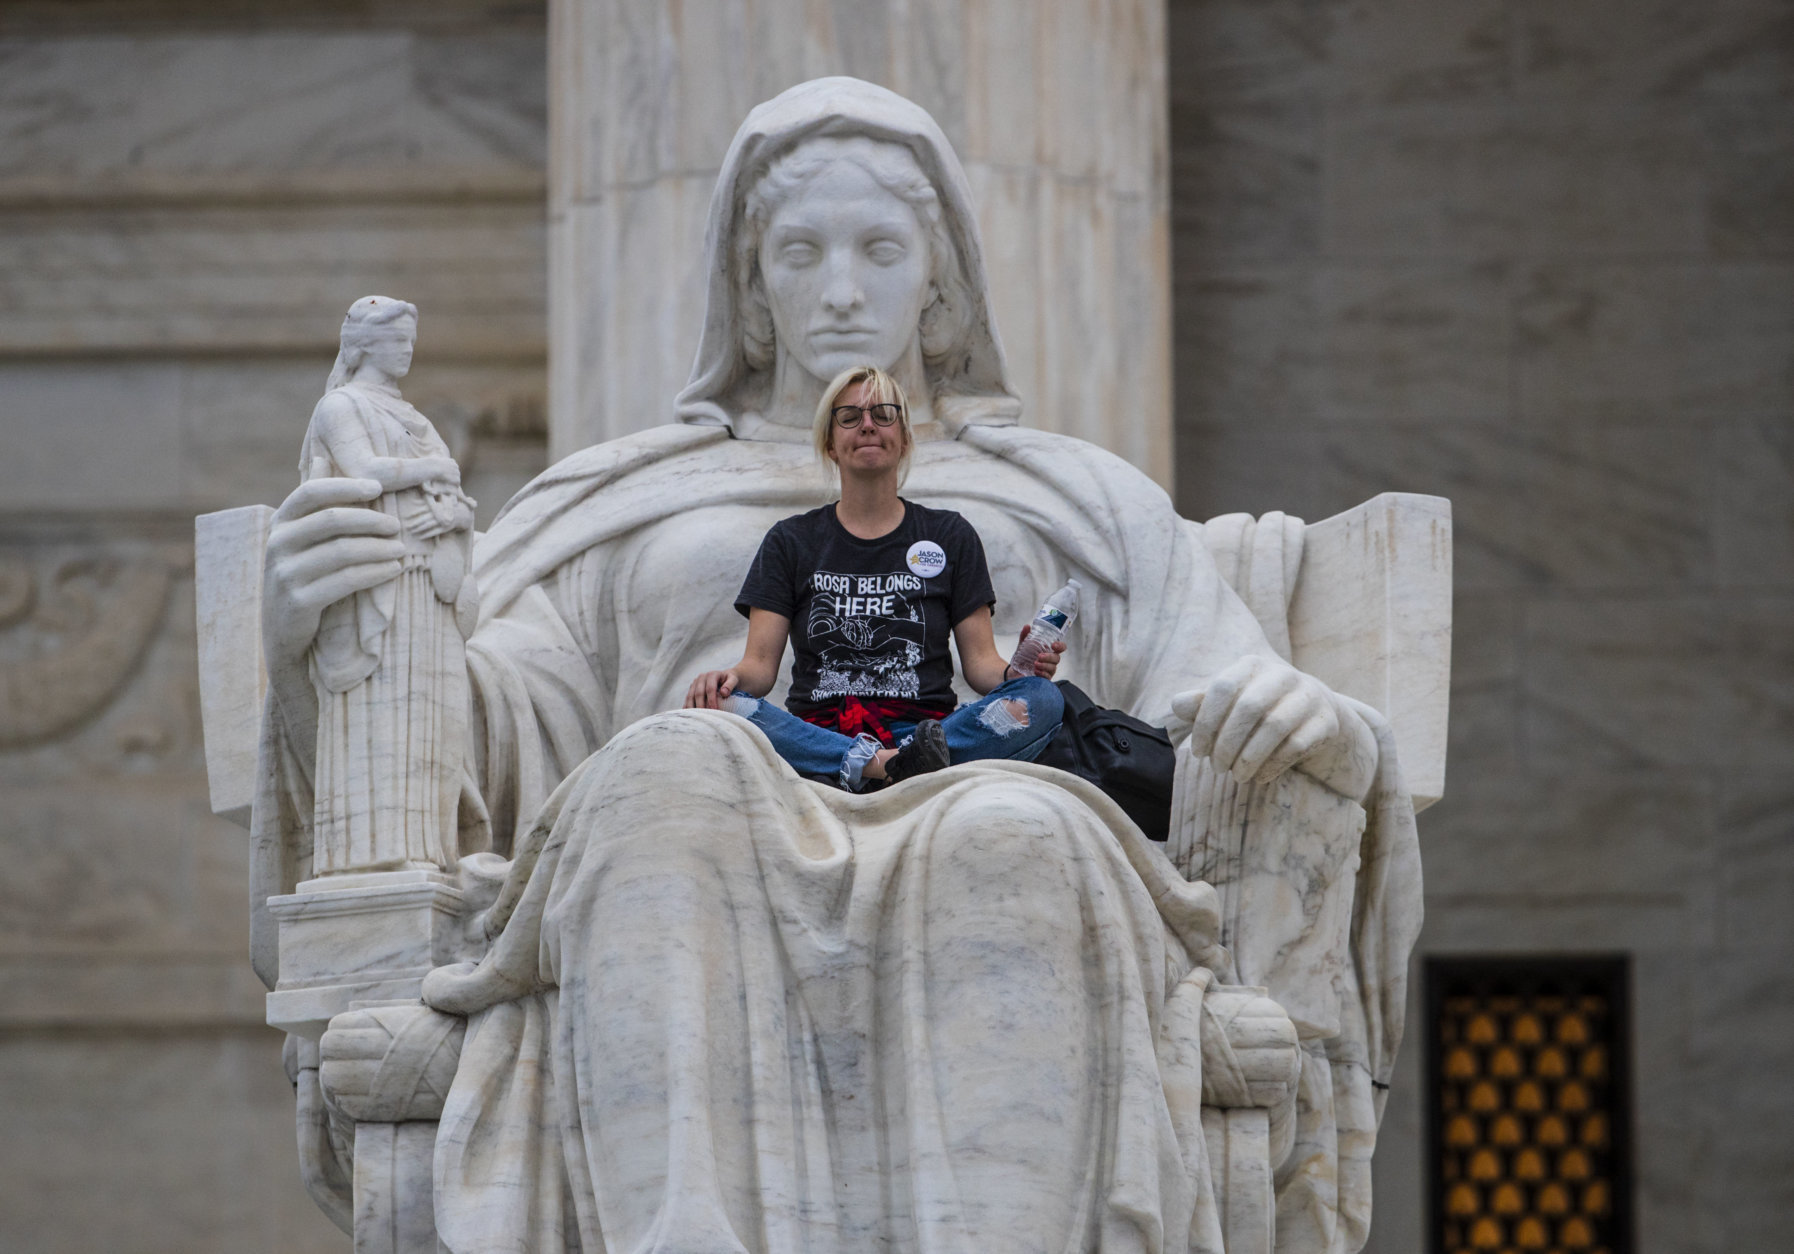 Jessica Campbell-Swanson, an activist from Denver, sits in the lap of a sculpture known as the Statue of Contemplation of Justice on the steps of the Supreme Court Building where she and others protested the confirmation of Brett Kavanaugh as the high court's newest justice, in Washington, Saturday, Oct. 6, 2018. Kavanaugh took the oath inside the building after the bitterly polarized U.S. Senate narrowly confirmed him, delivering an election-season triumph to President Donald Trump that could swing the court rightward for a generation. (AP Photo/J. Scott Applewhite)